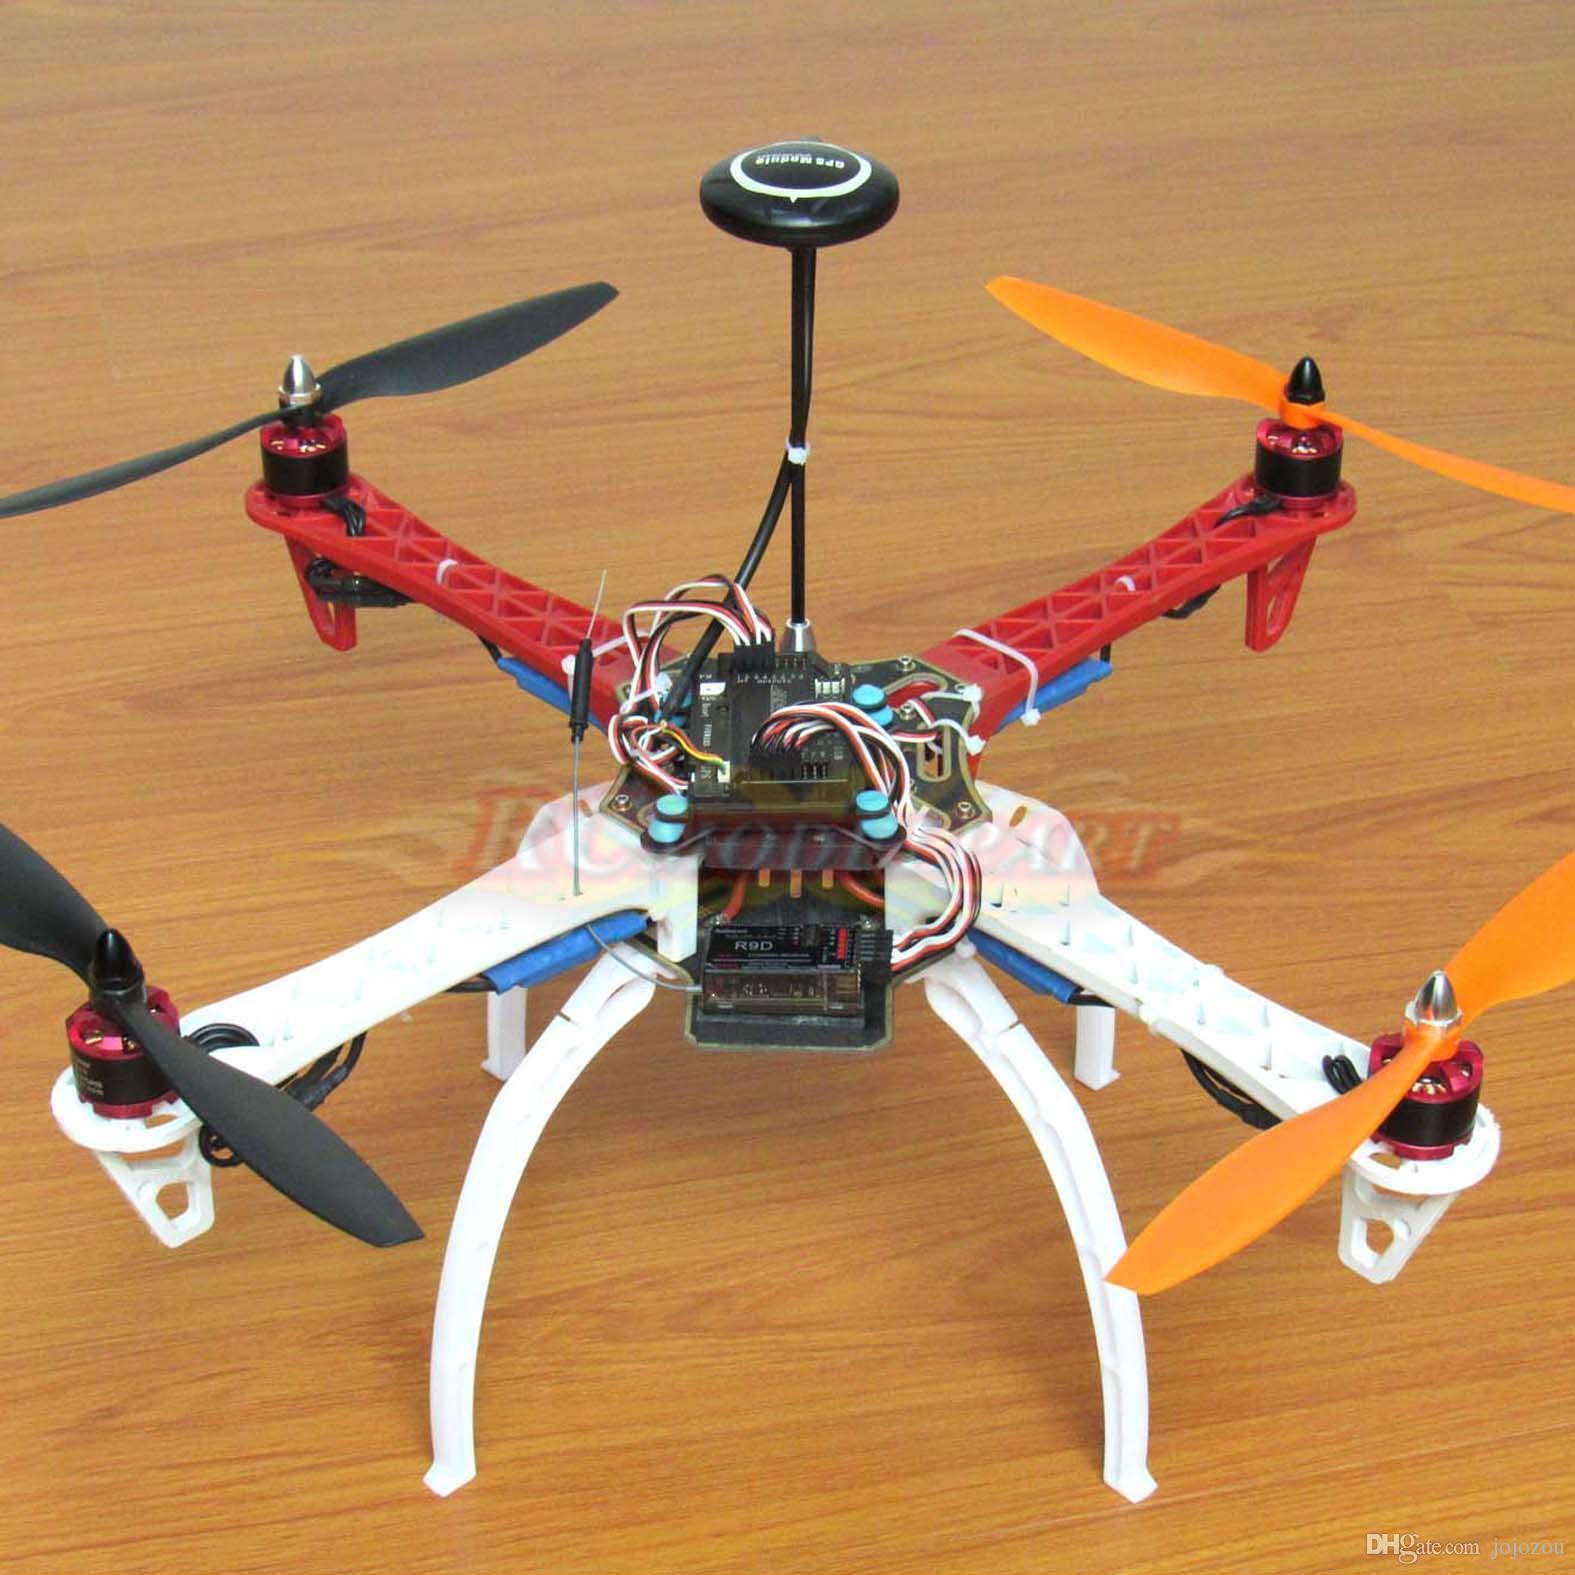 Best ideas about Quadcopter DIY Kit . Save or Pin 2019 DIY F450 Quadcopter Kit APM2 8 FC NEO 7M GPS 920KV BL Now.